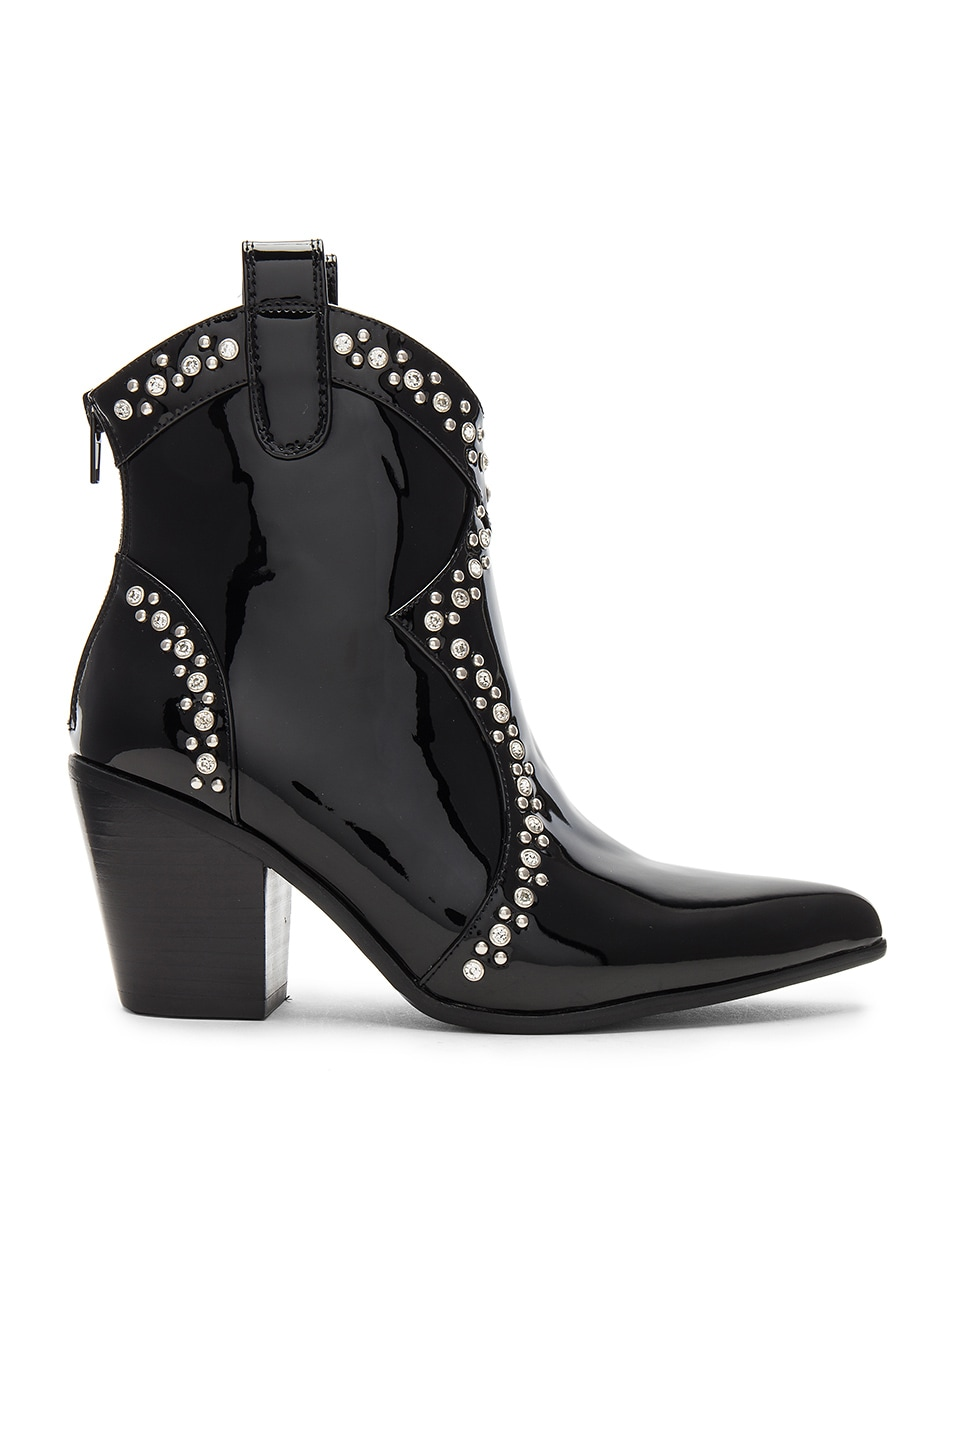 Jeffrey Campbell Nightwing Bootie in Black Patent & Silver